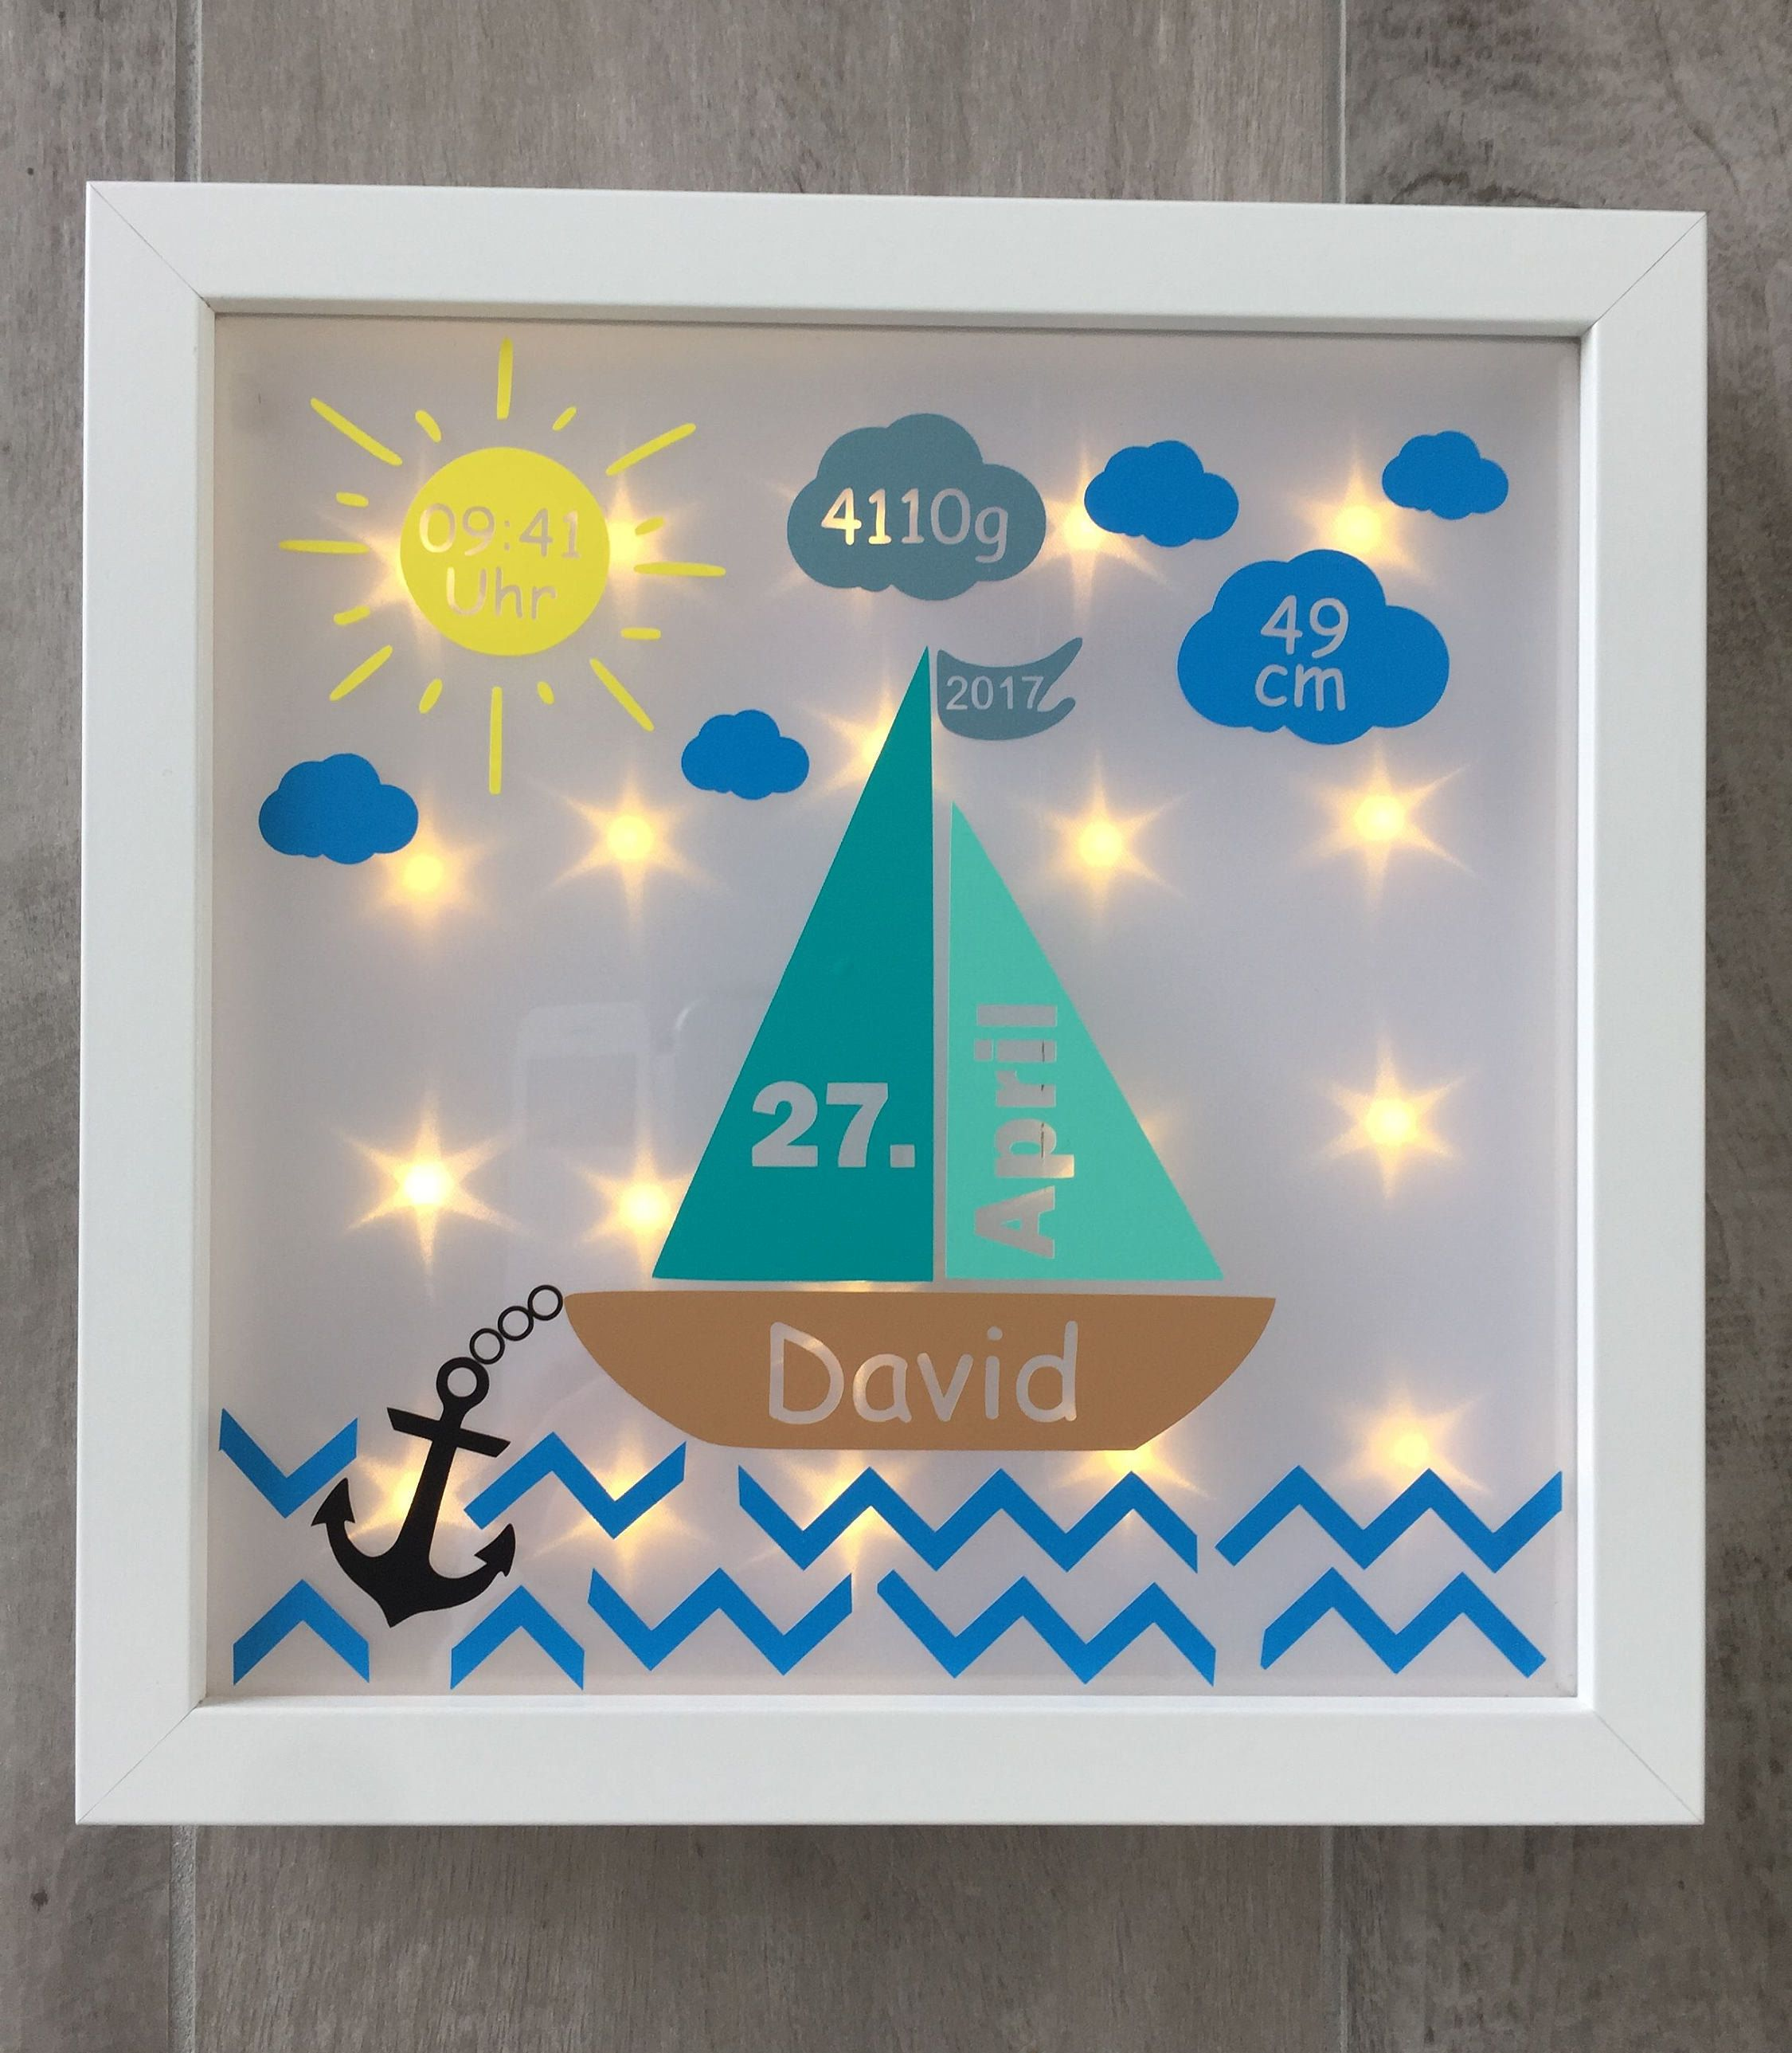 Illuminated picture frame with sailing boat and dates of birth ...